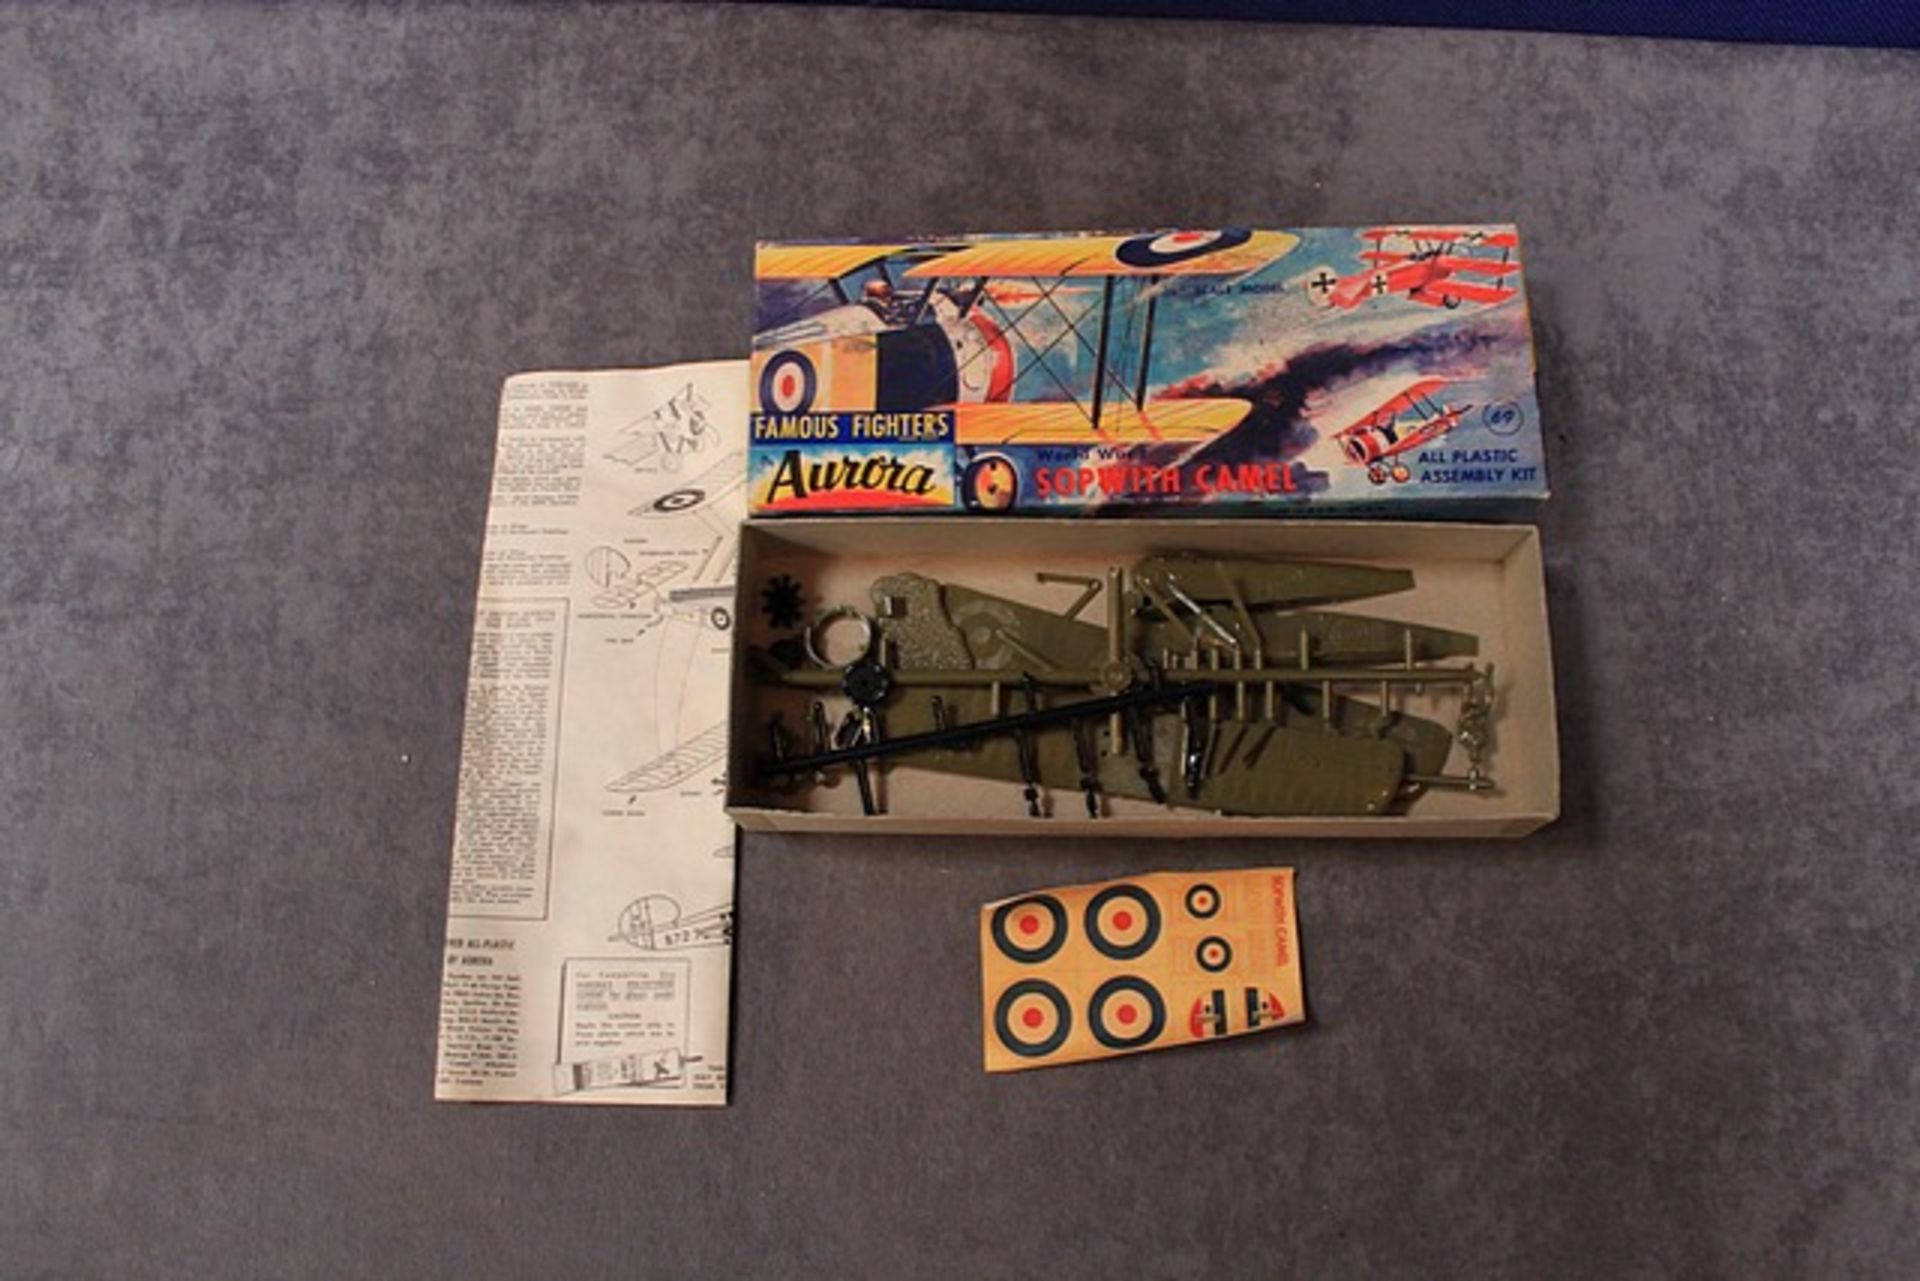 Lot 71 - Aurora Hobby Kits Famous Fighters Series Kit Number 102-69 World War 1 Sopwith Camel With